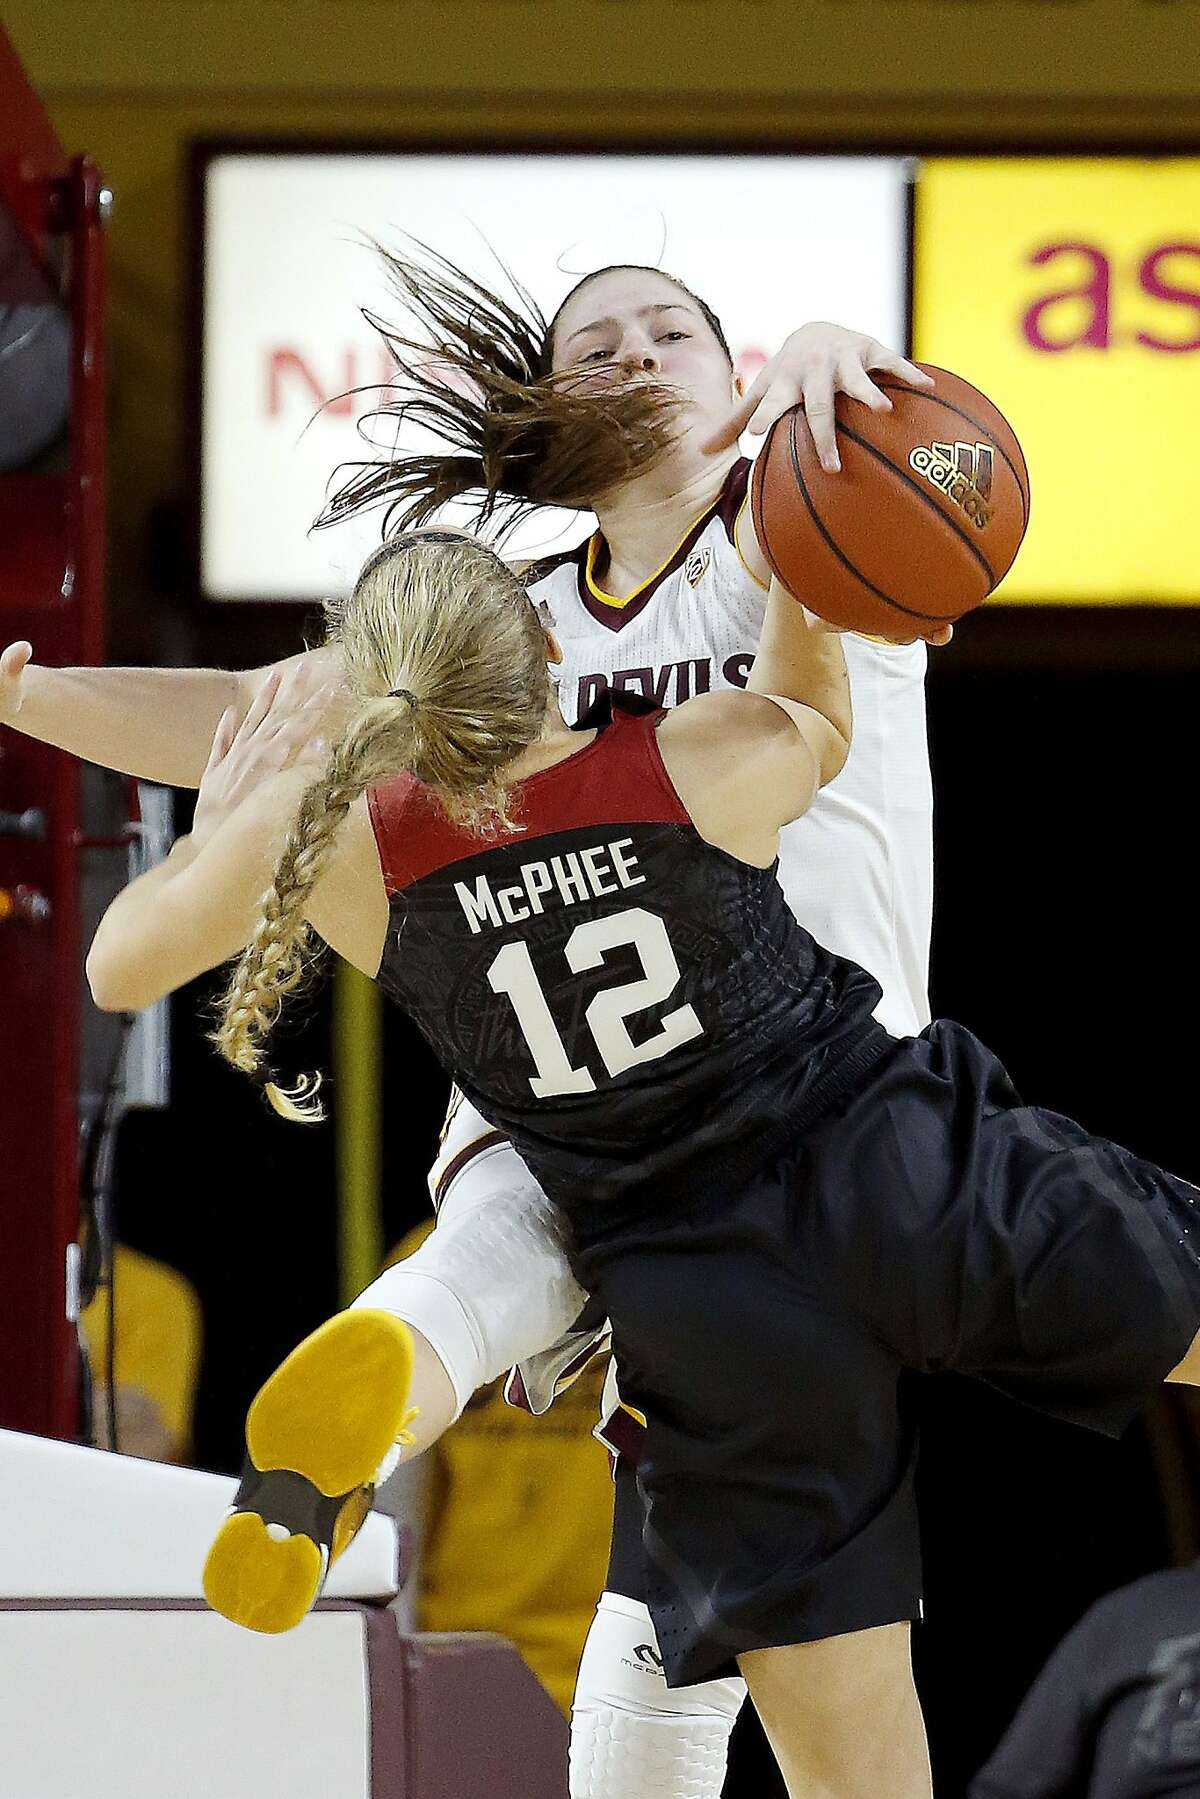 Arizona State's Sophie Brunner, right, blocks the shot of Stanford's Brittany McPhee, left, during the second half of an NCAA college basketball game Monday, Jan. 4, 2016, in Tempe, Ariz. Arizona State won 49-31. (AP Photo/Ross D. Franklin)